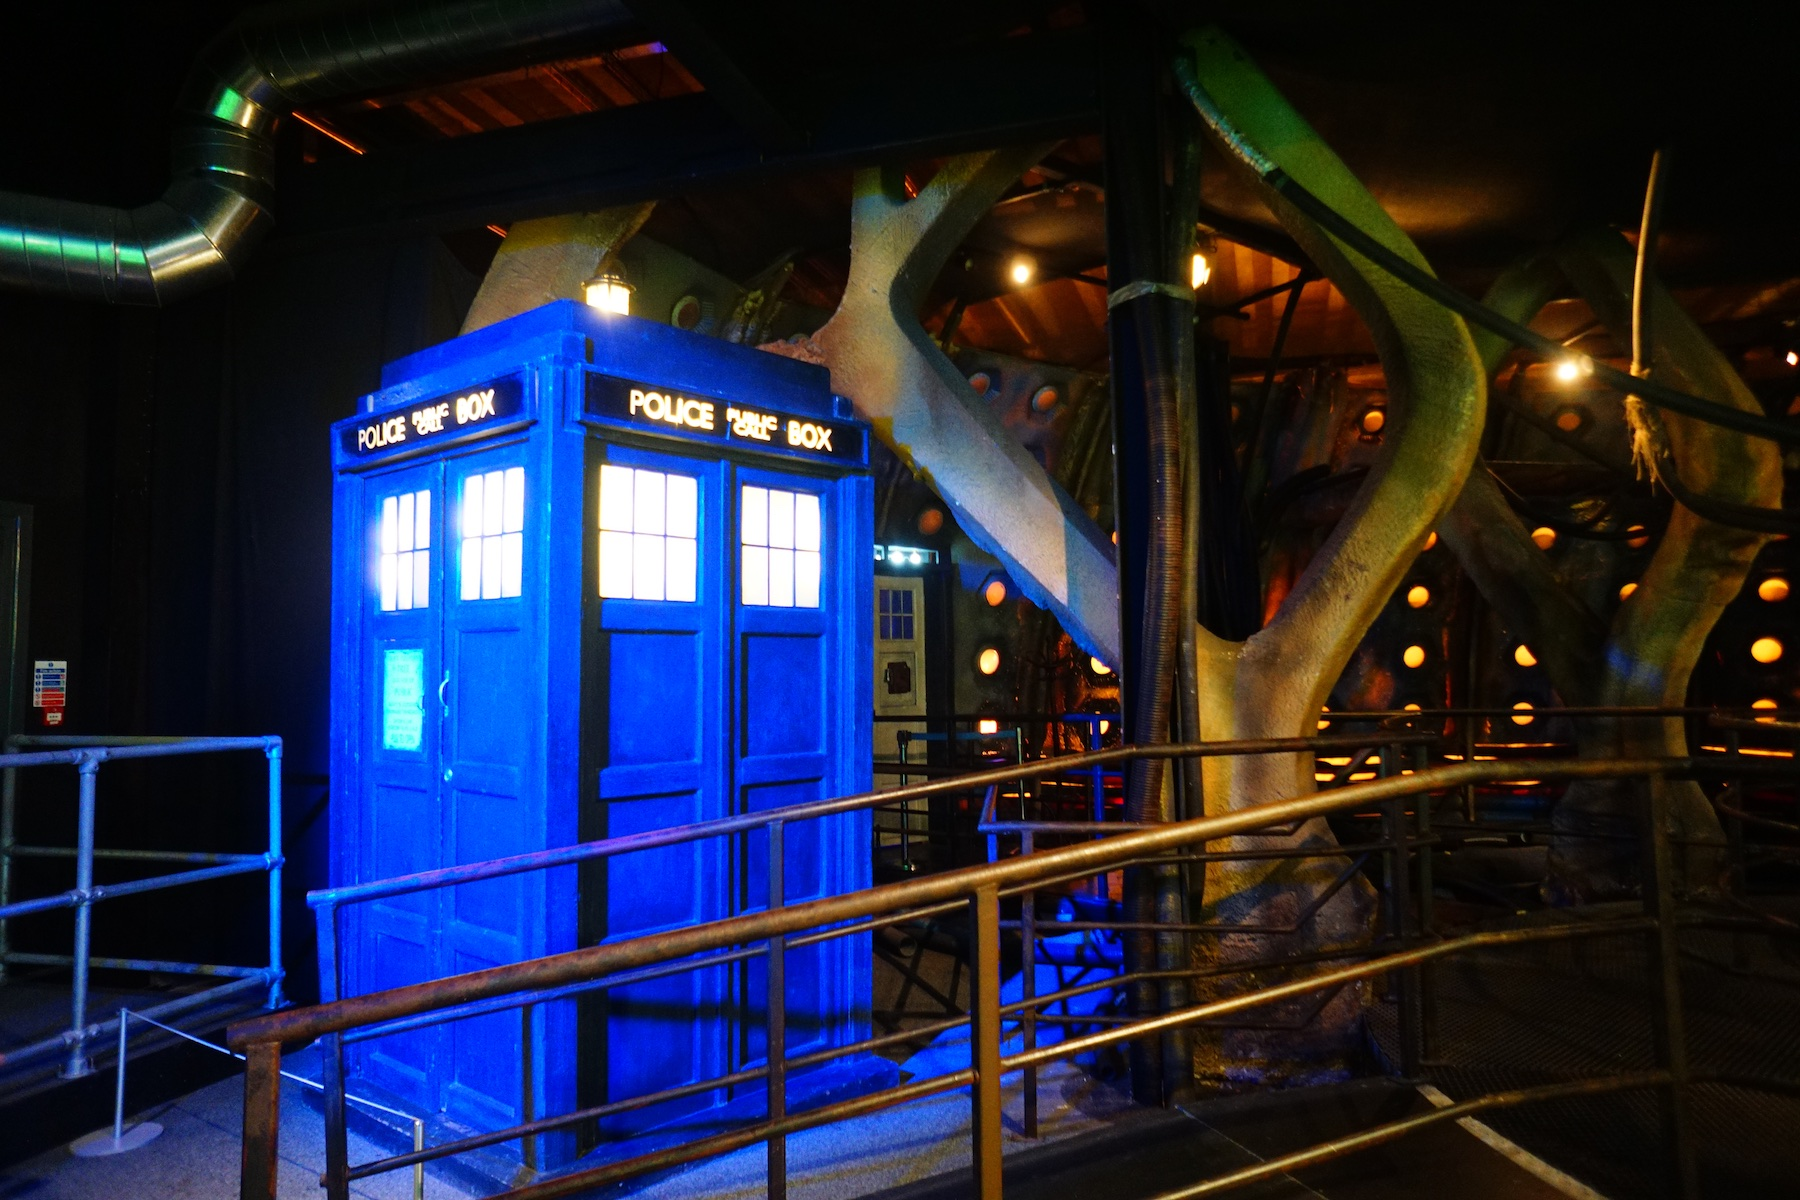 Dr. Who Experience, Wales, UK